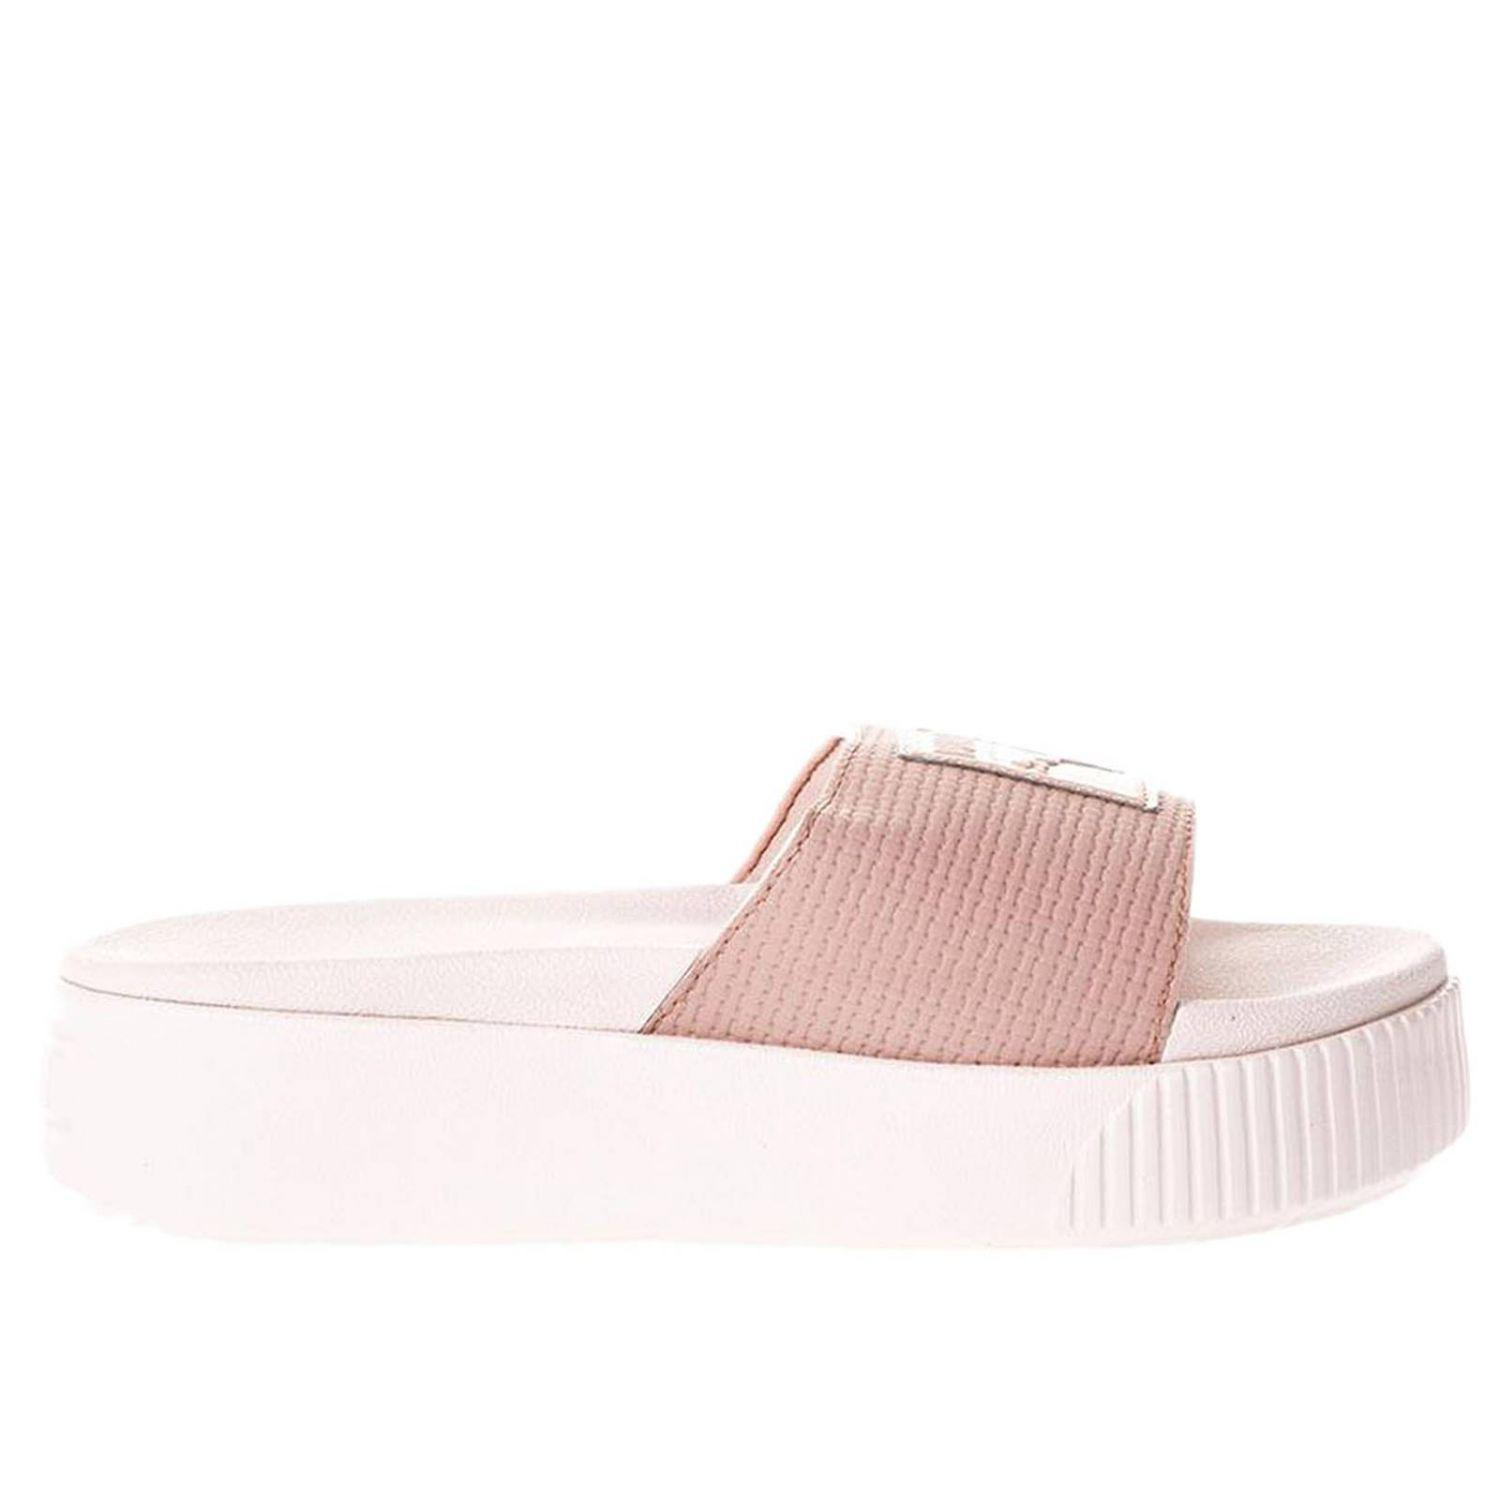 509713abf9a Lyst - Puma Select Sandals Shoes Men in Pink